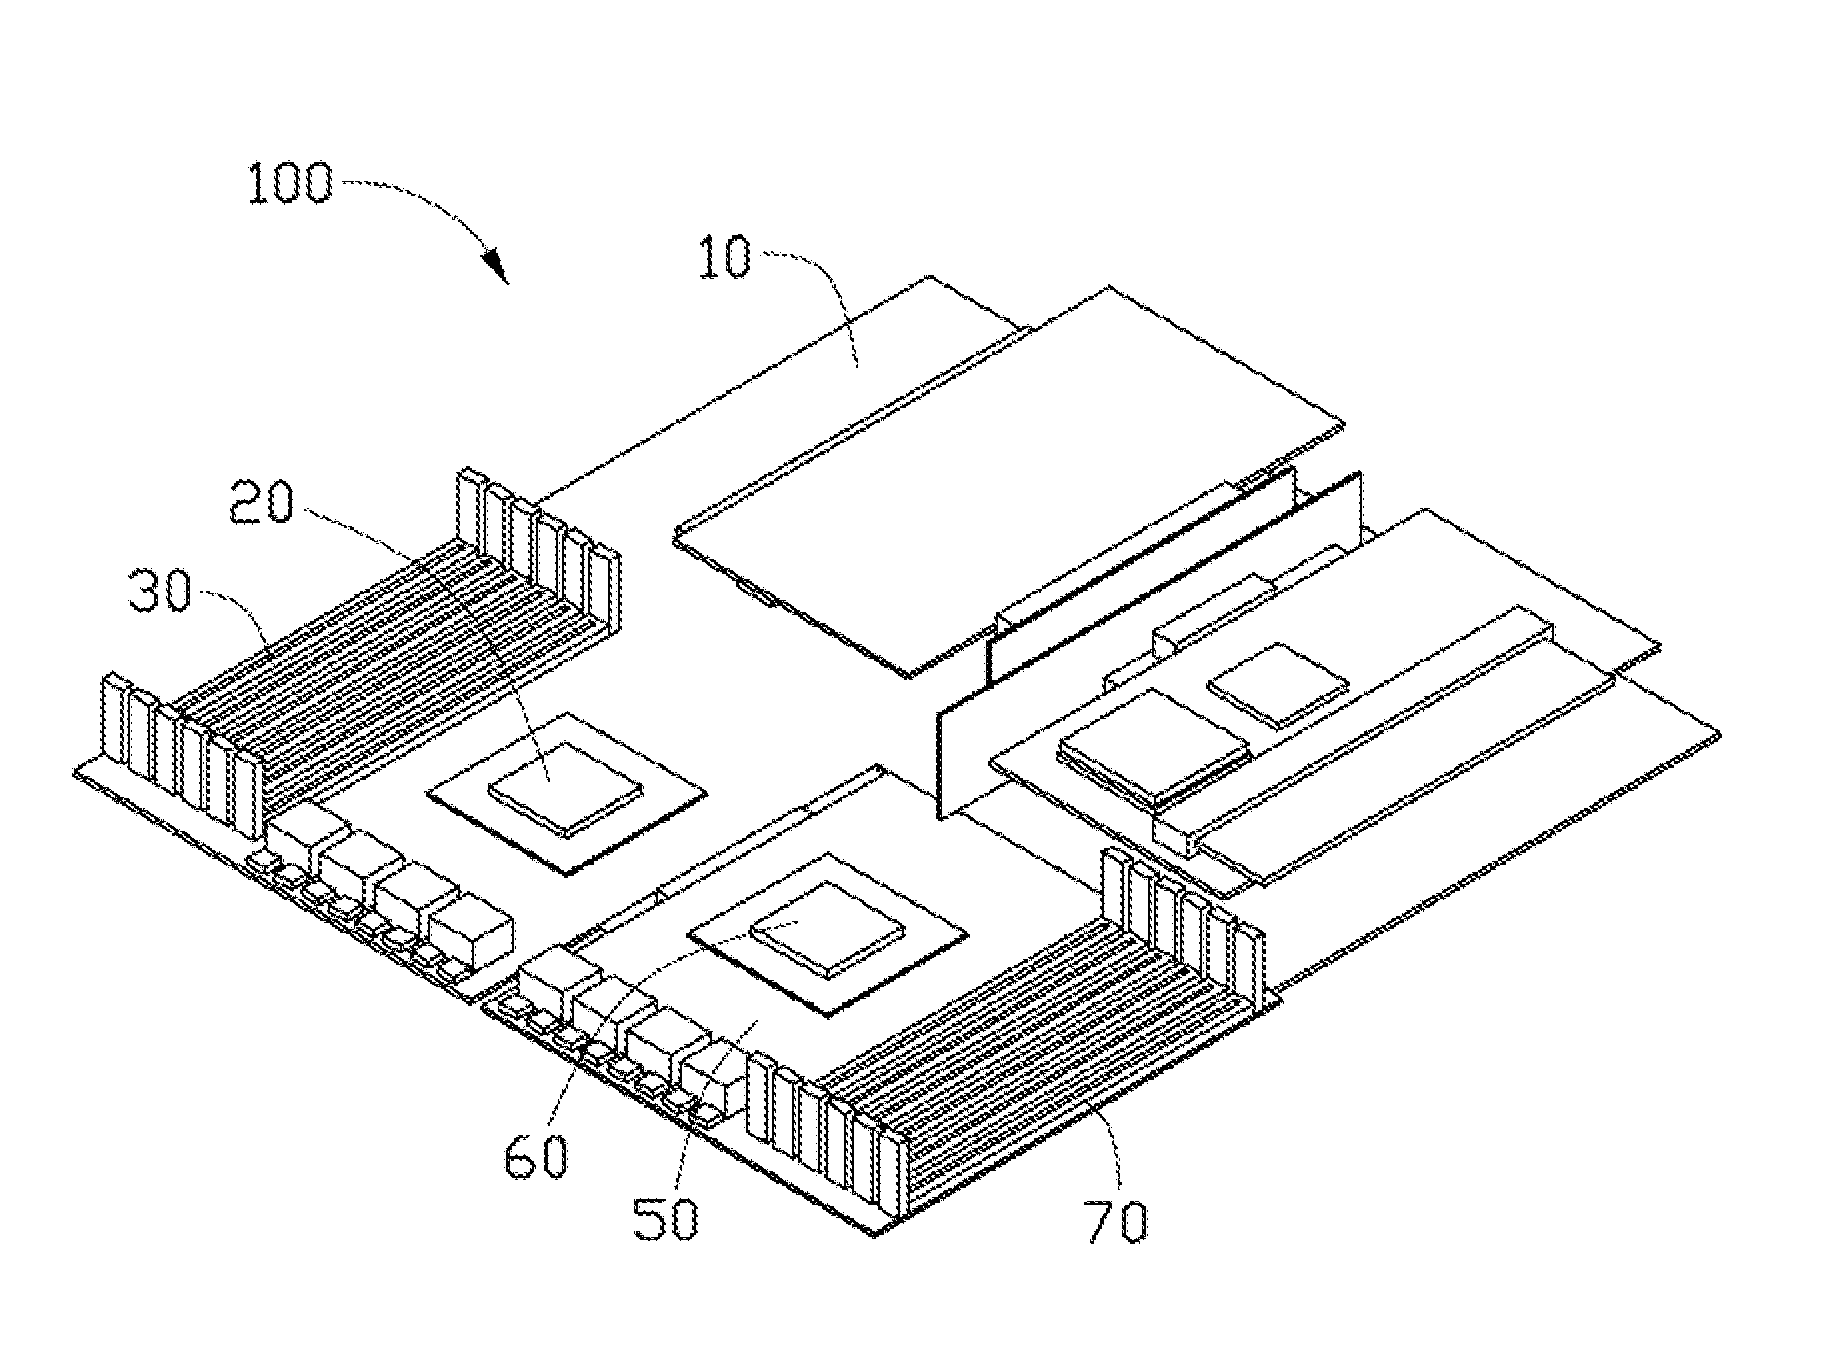 Motherboard Drawing: Patent US20120069510